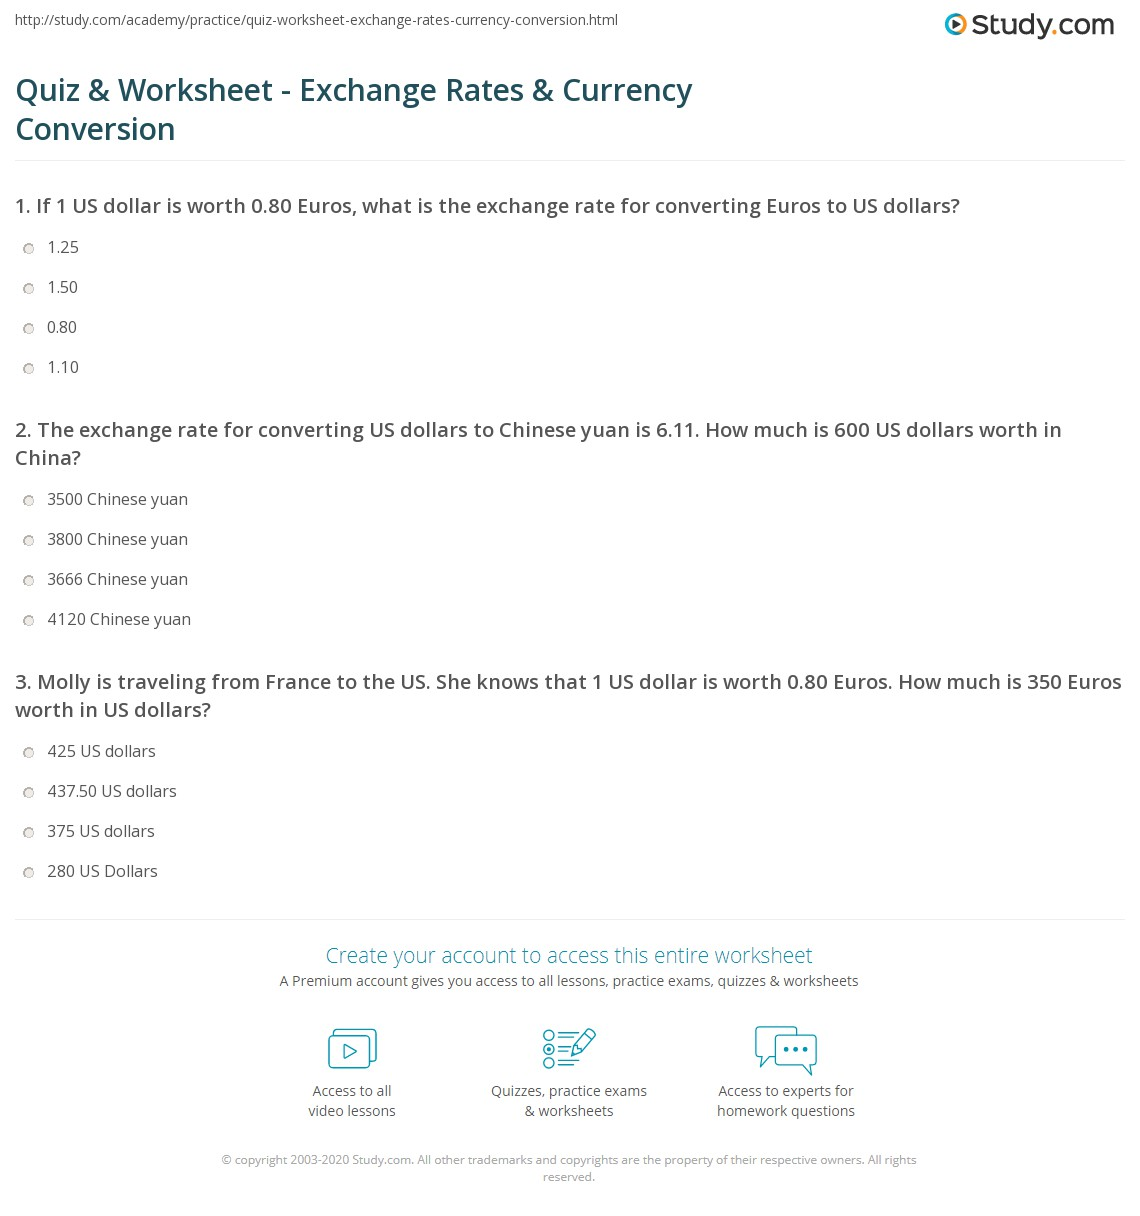 Weirdmailus  Unique Quiz Amp Worksheet  Exchange Rates Amp Currency Conversion  Studycom With Fetching Print Exchange Rates Amp Currency Conversion Worksheet With Endearing Ks Maths Worksheets Printable Also Mathematics Grade  Worksheets In Addition Stephen Covey Weekly Worksheet And Range Mode Median Worksheets As Well As Printable Money Worksheets For Rd Grade Additionally Surface Area And Volume Worksheets Grade  From Studycom With Weirdmailus  Fetching Quiz Amp Worksheet  Exchange Rates Amp Currency Conversion  Studycom With Endearing Print Exchange Rates Amp Currency Conversion Worksheet And Unique Ks Maths Worksheets Printable Also Mathematics Grade  Worksheets In Addition Stephen Covey Weekly Worksheet From Studycom